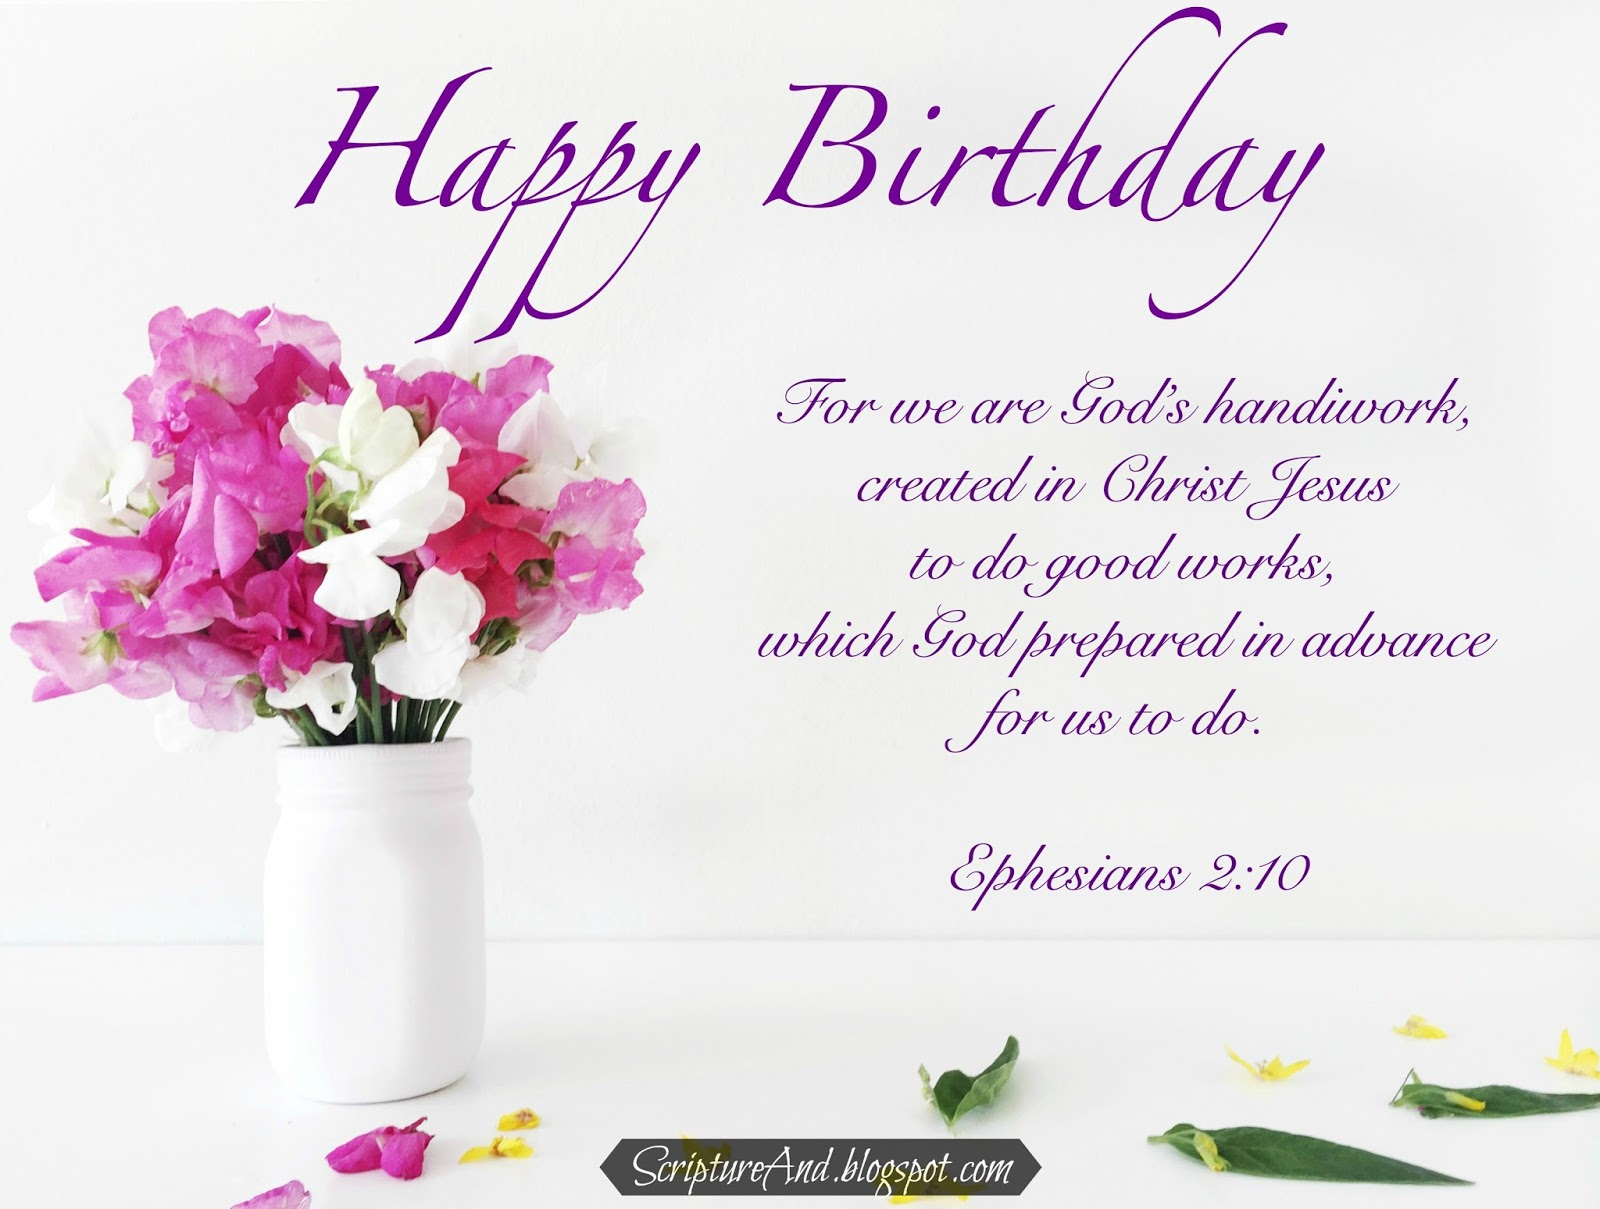 Scripture and free birthday images with bible verses happy birthday with flowers in a vase and ephesians 210 from scriptureandspot kristyandbryce Images